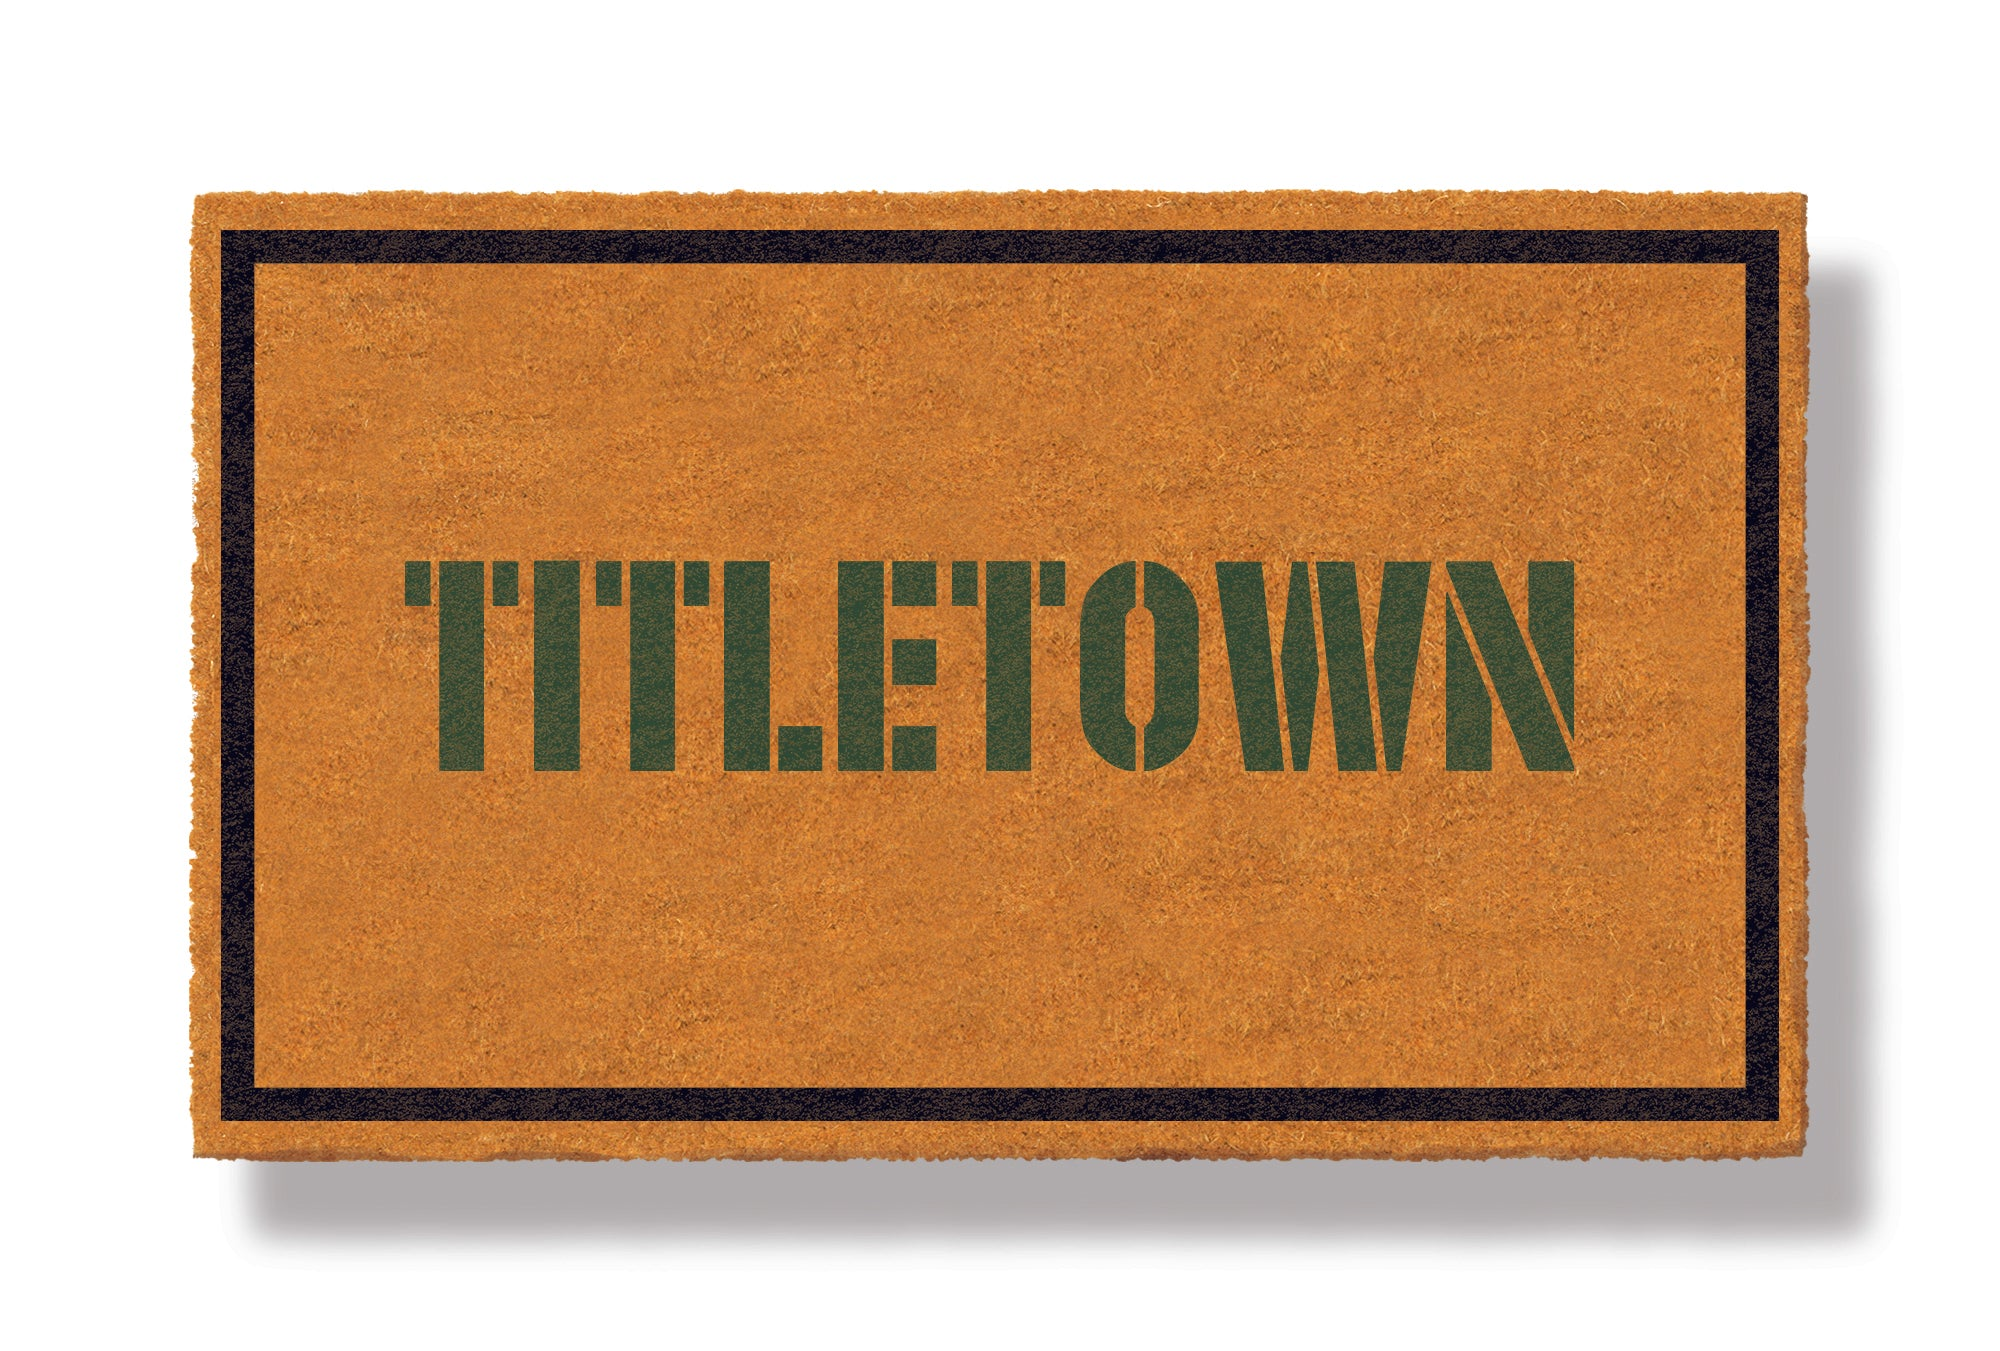 This coir welcome mat is a funny doormat on a white background with a drop shadow. The brown doormat has a black border and has black centered text that reads Titletown.